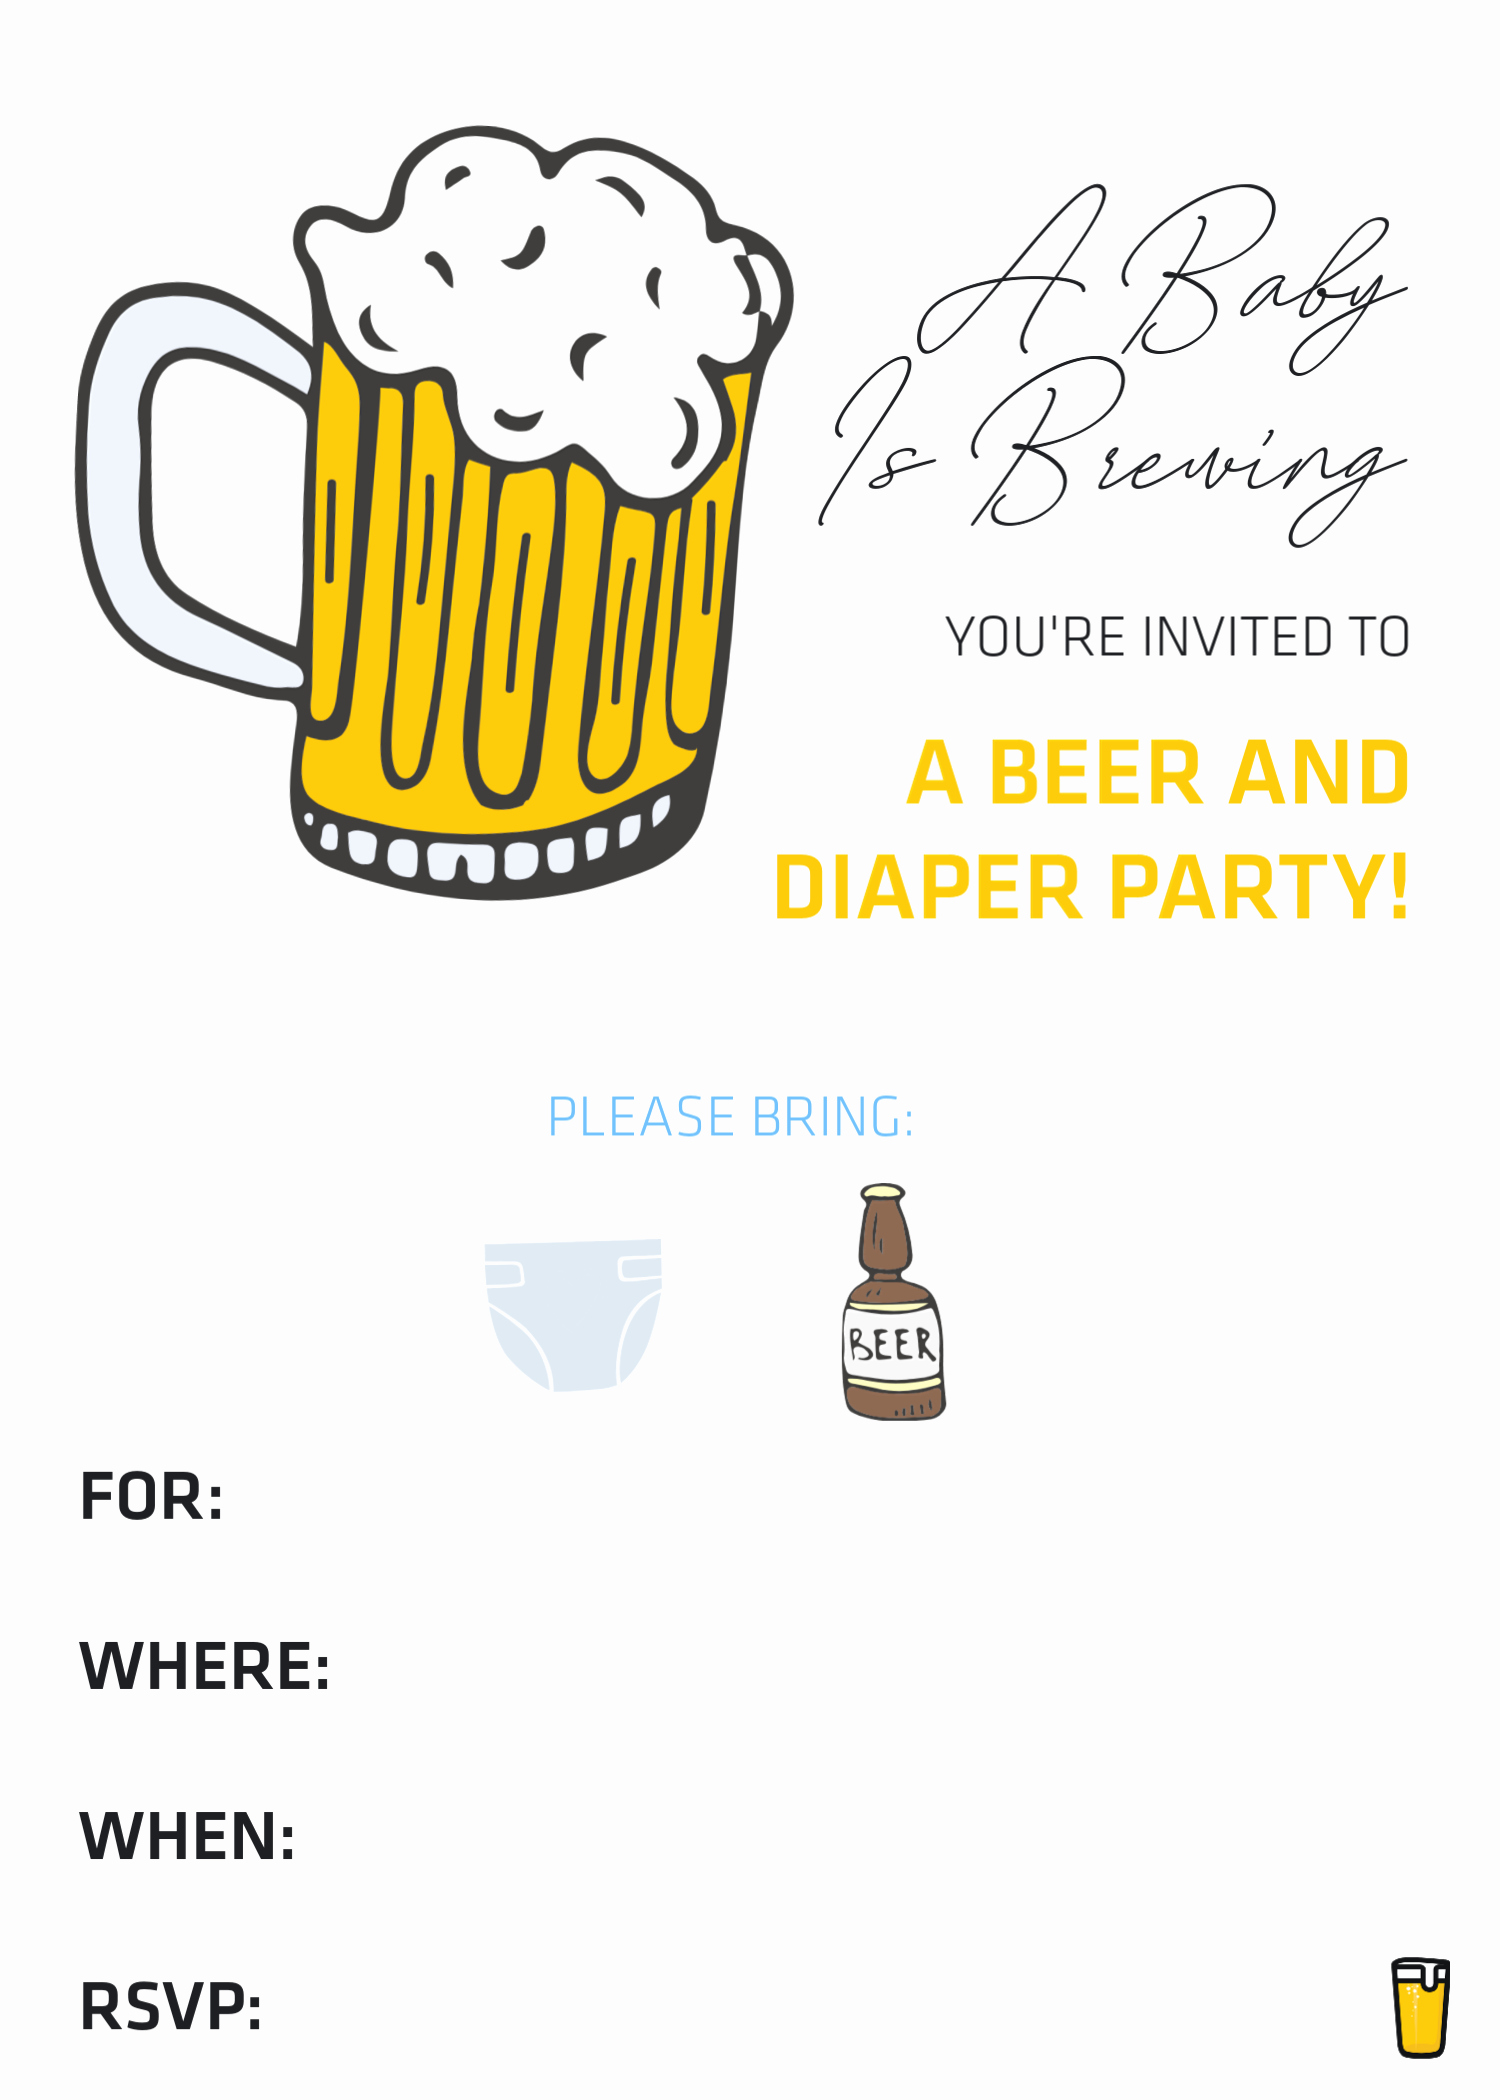 Diaper Party Invitation Templates Luxury How to Throw A Beer & Diaper Party – the Best Dad Baby